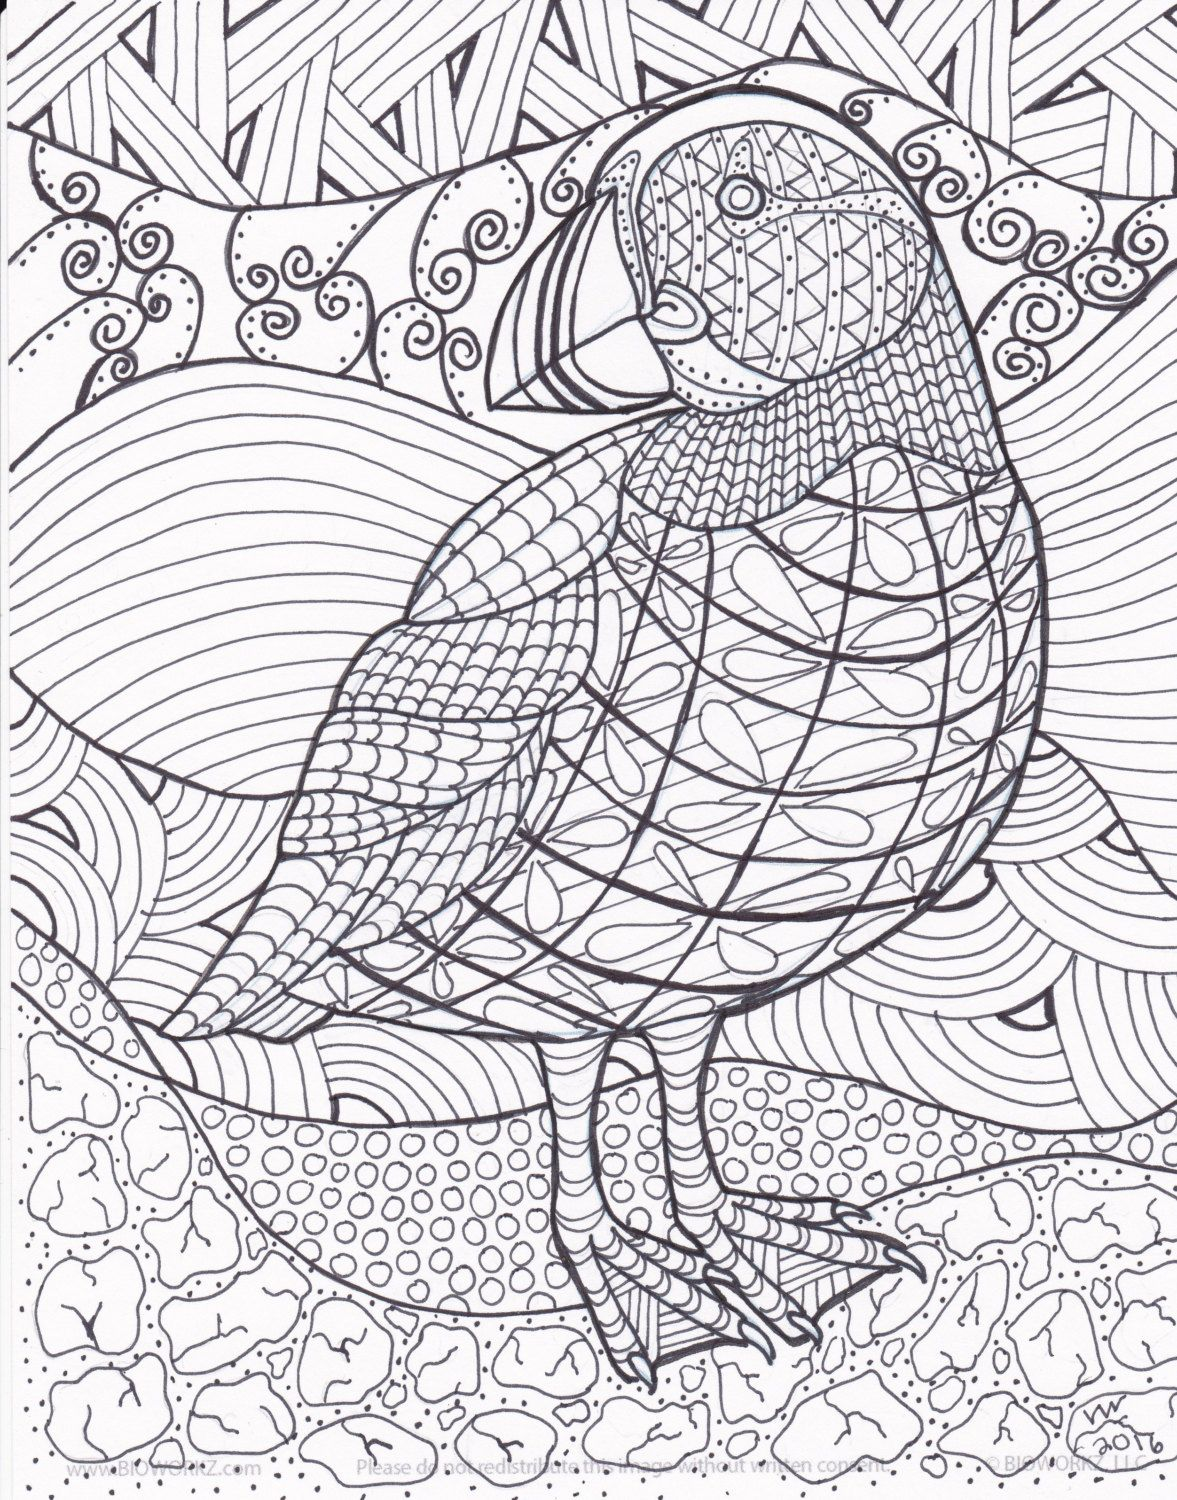 Puffin Zentangle Coloring Page by InspirationbyVicki on Etsy ...